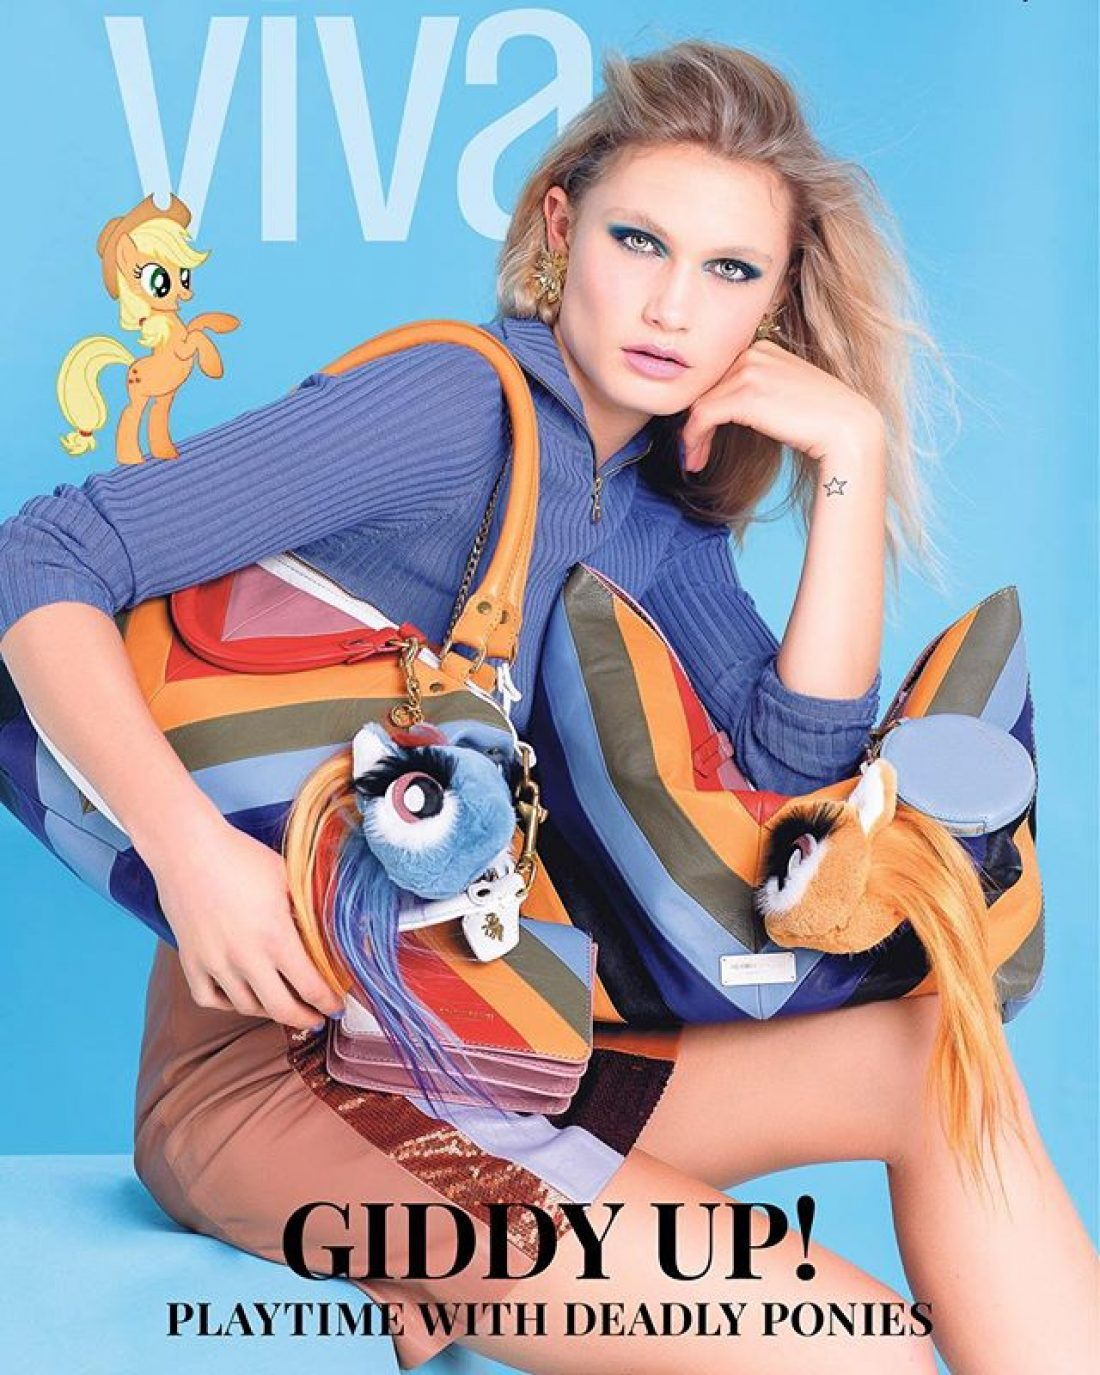 Polly photographed by Babiche Martens for the Cover of Viva Magazine: Styling Dan Ahwa, Mua: Kiekie Stanners using MAC, Hair: Stephen Marr;  Words Zoe Walker; featuring Deadly Ponies